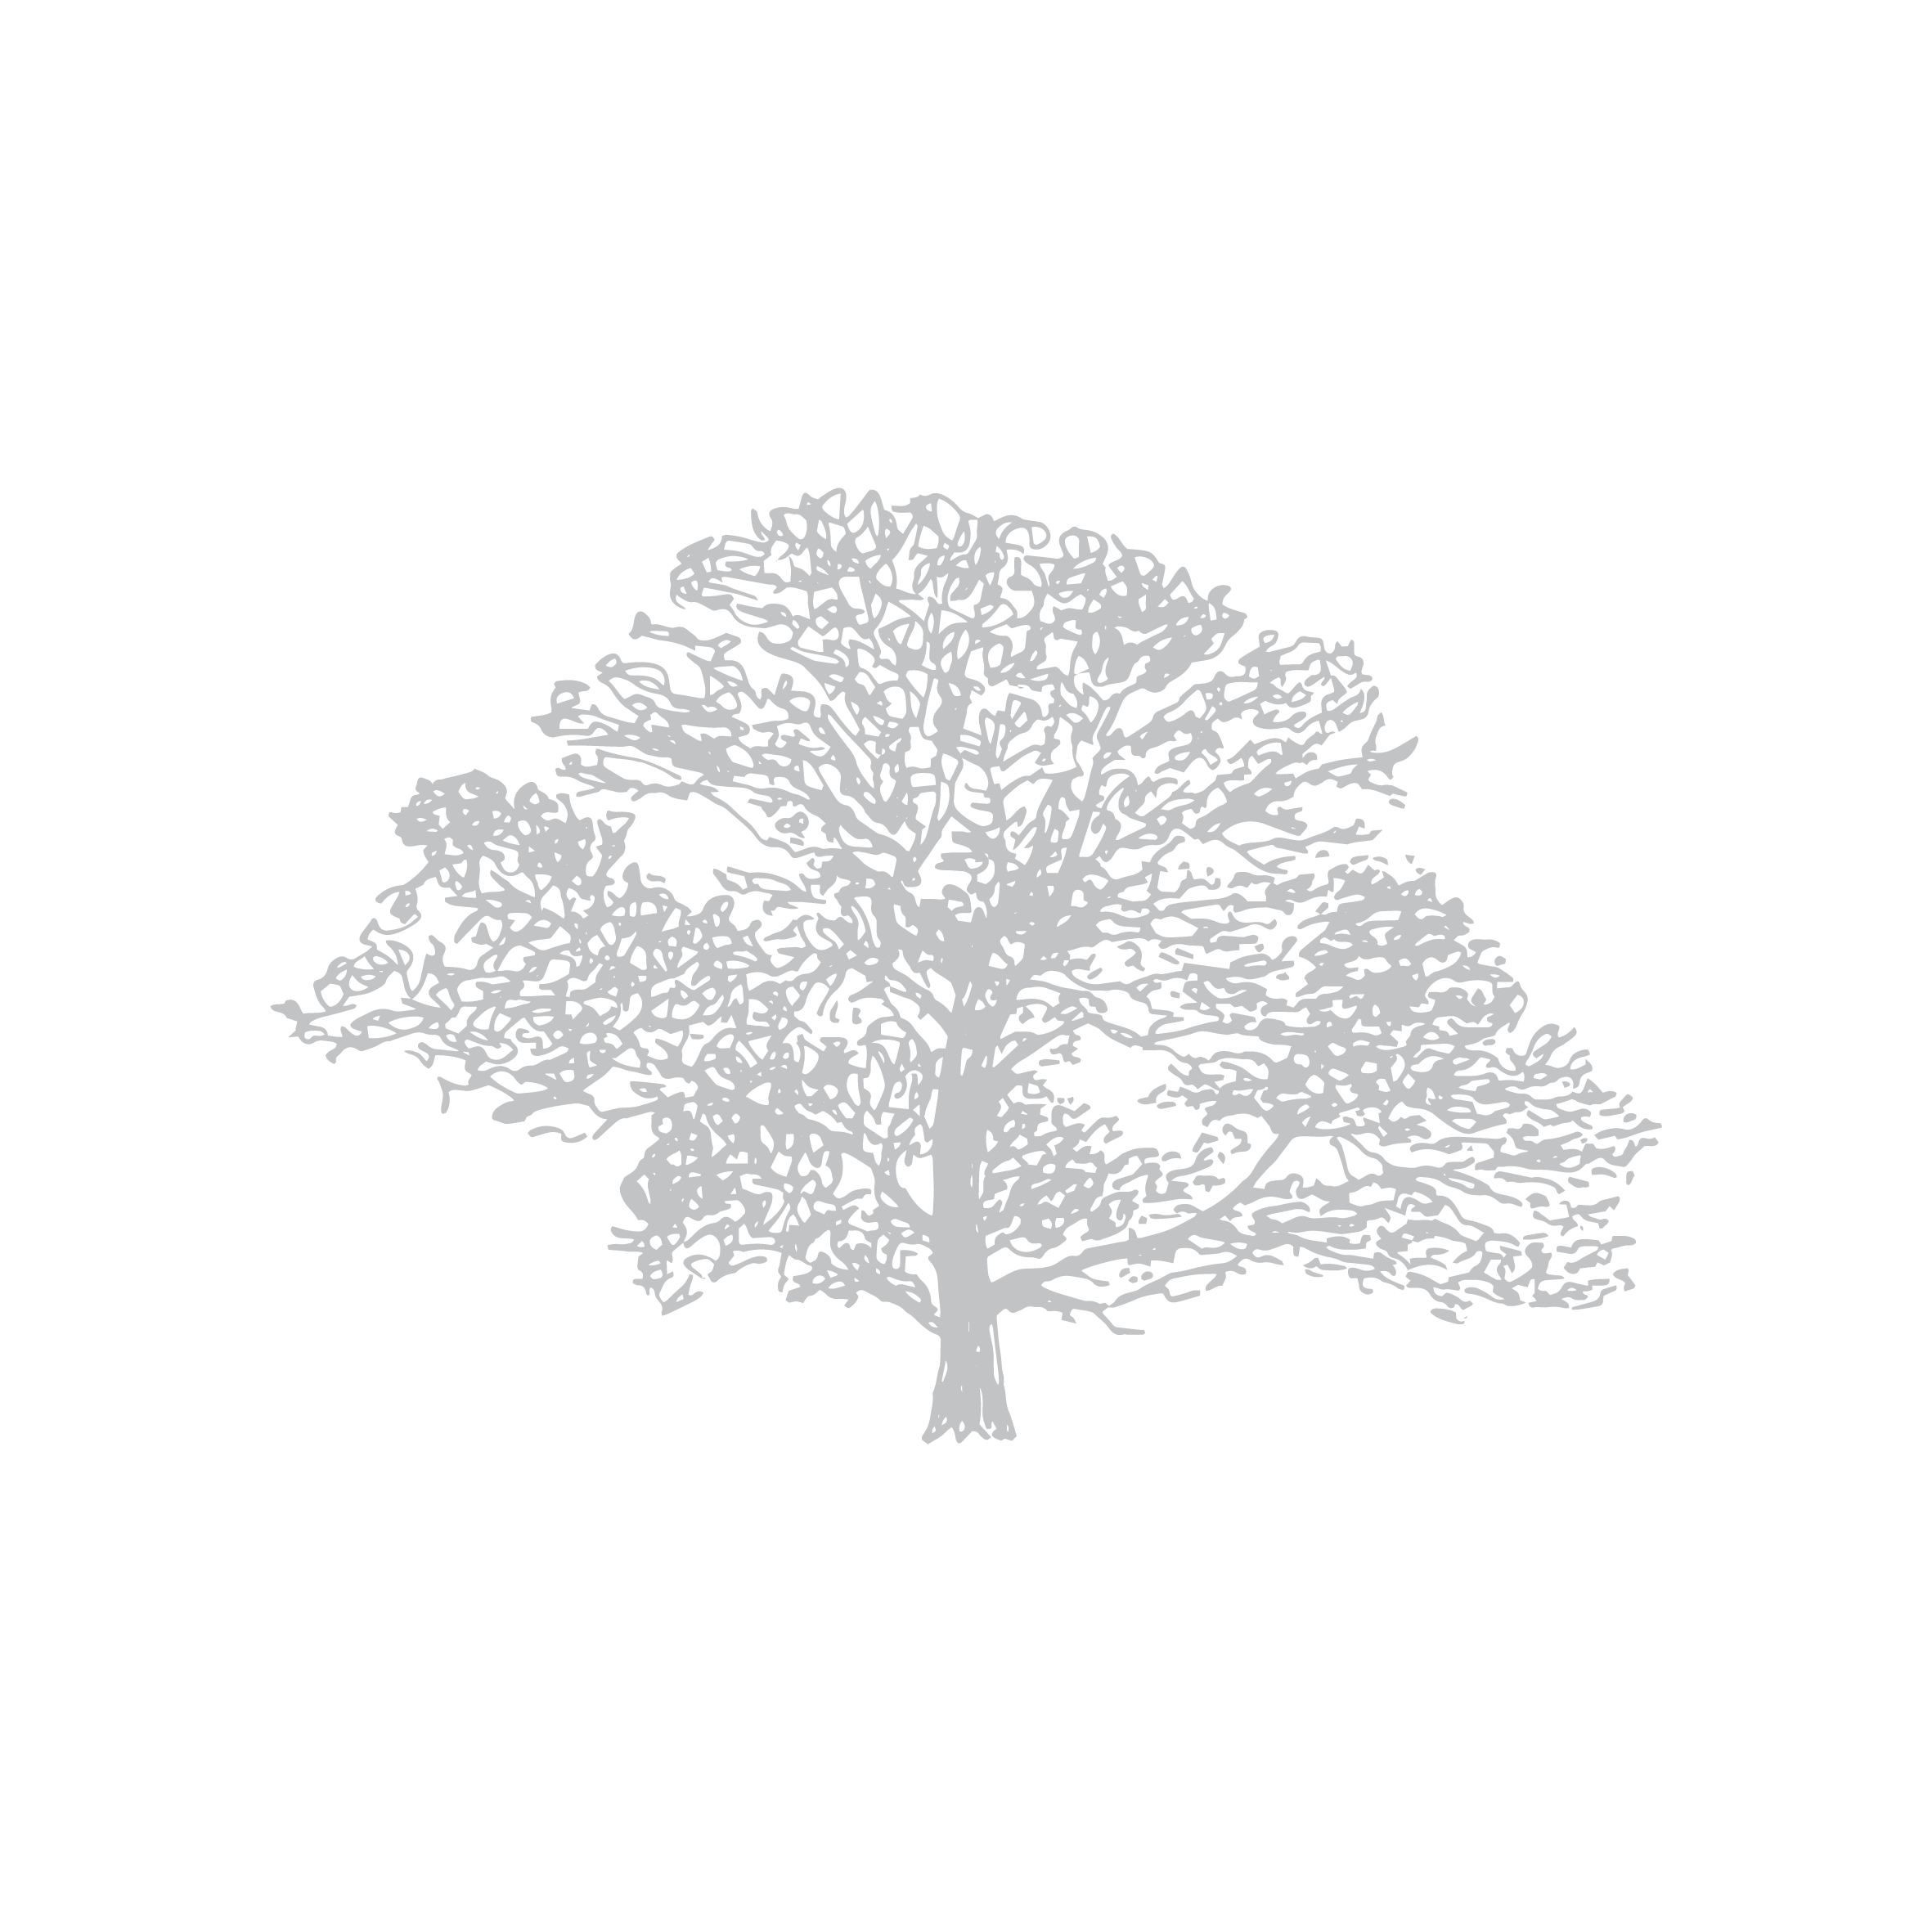 Down To Earth illustration 4_Silver Birch.png